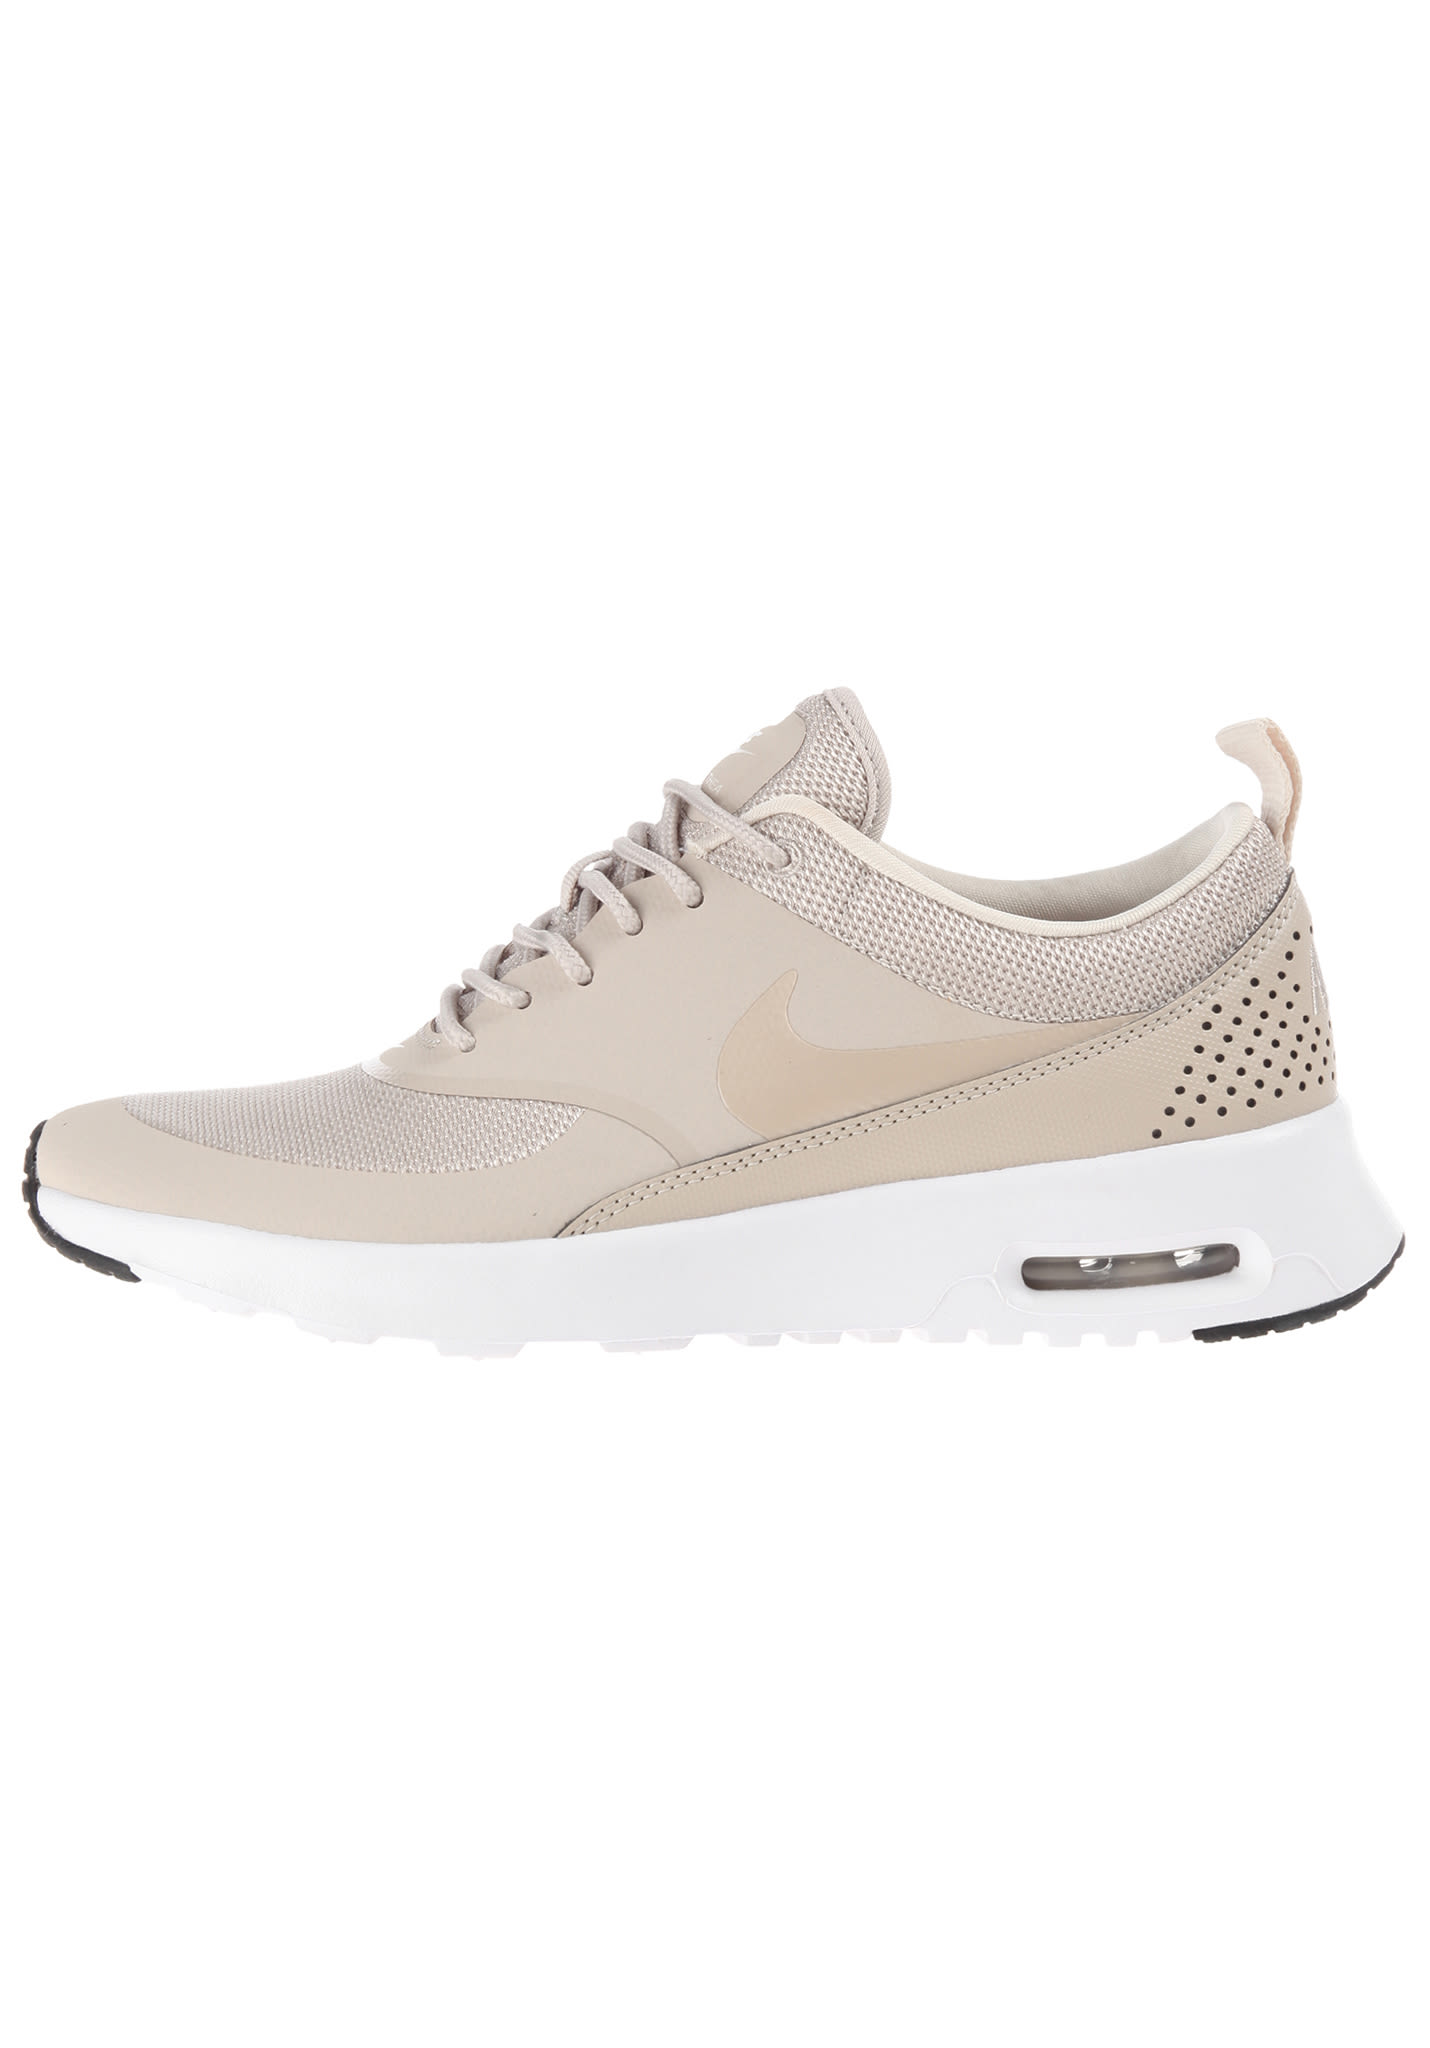 NIKE SPORTSWEAR Air Max Thea Sneakers for Women Beige